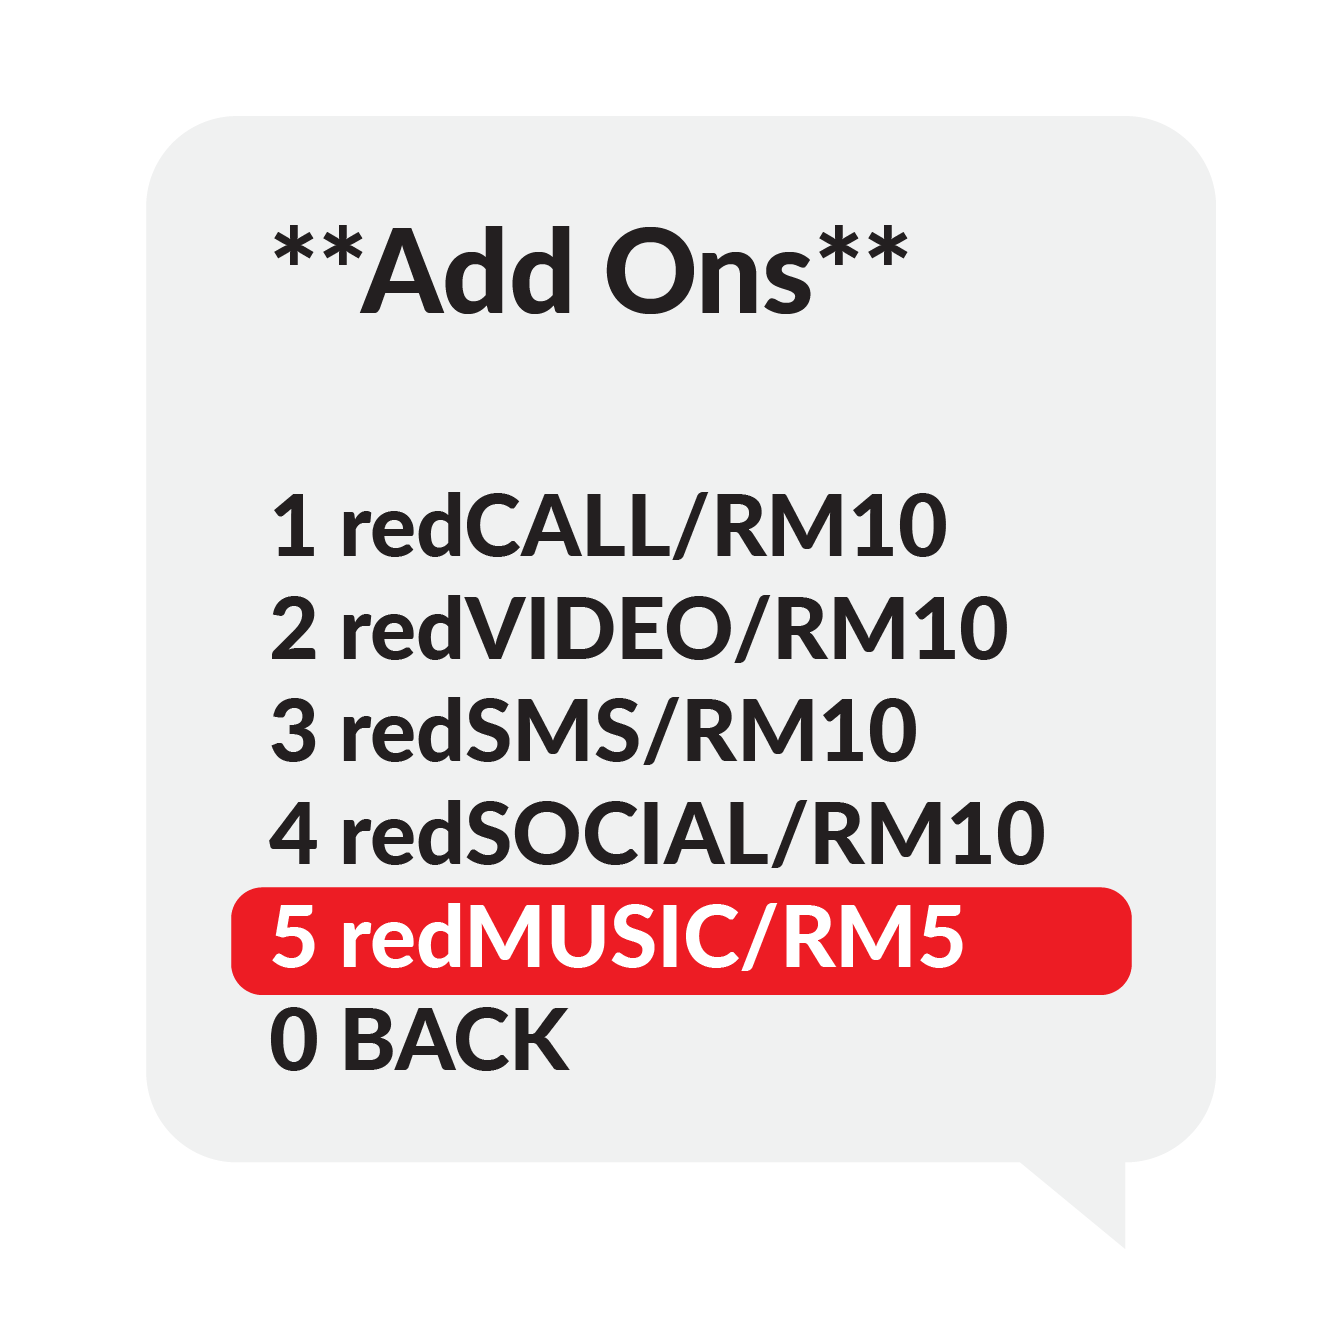 "Step 3 ""Add Ons"", 1.redCALL/RM10 2.redVIDEO/RM10 3.redSMS/RM10 , Select 2 redVIDEO/RM10"